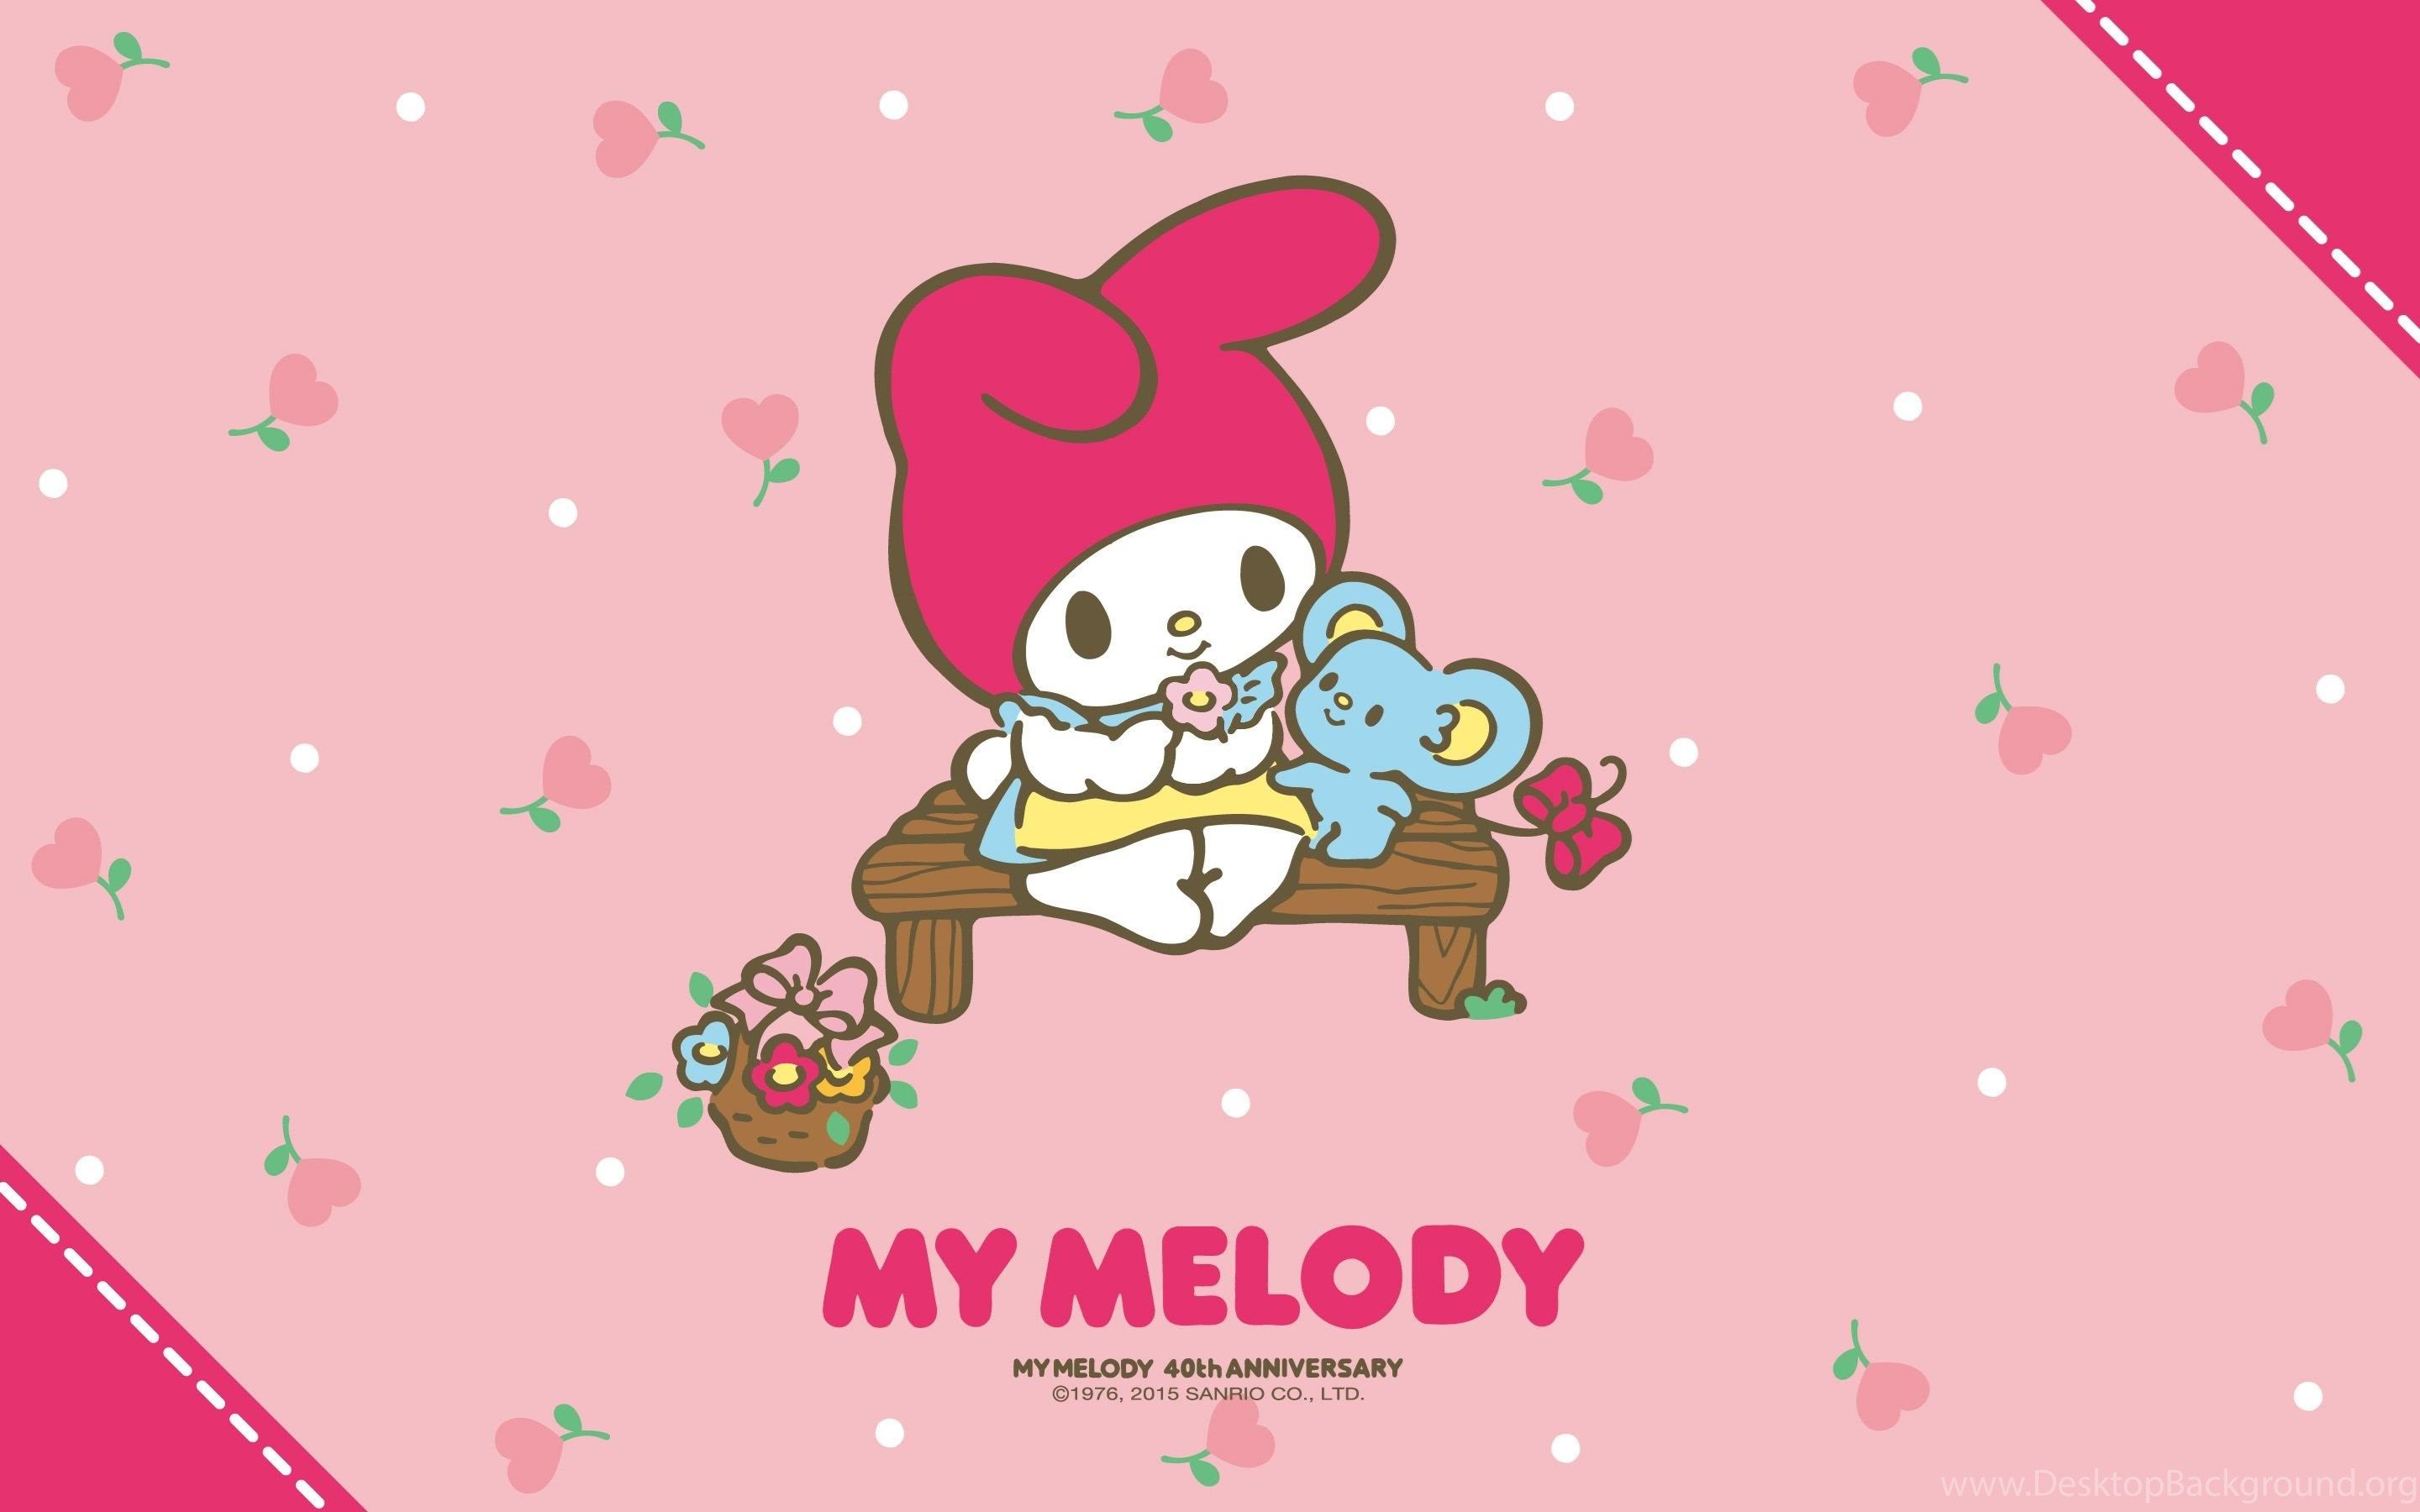 My Melody Sanrio Wallpapers Top Free My Melody Sanrio Backgrounds